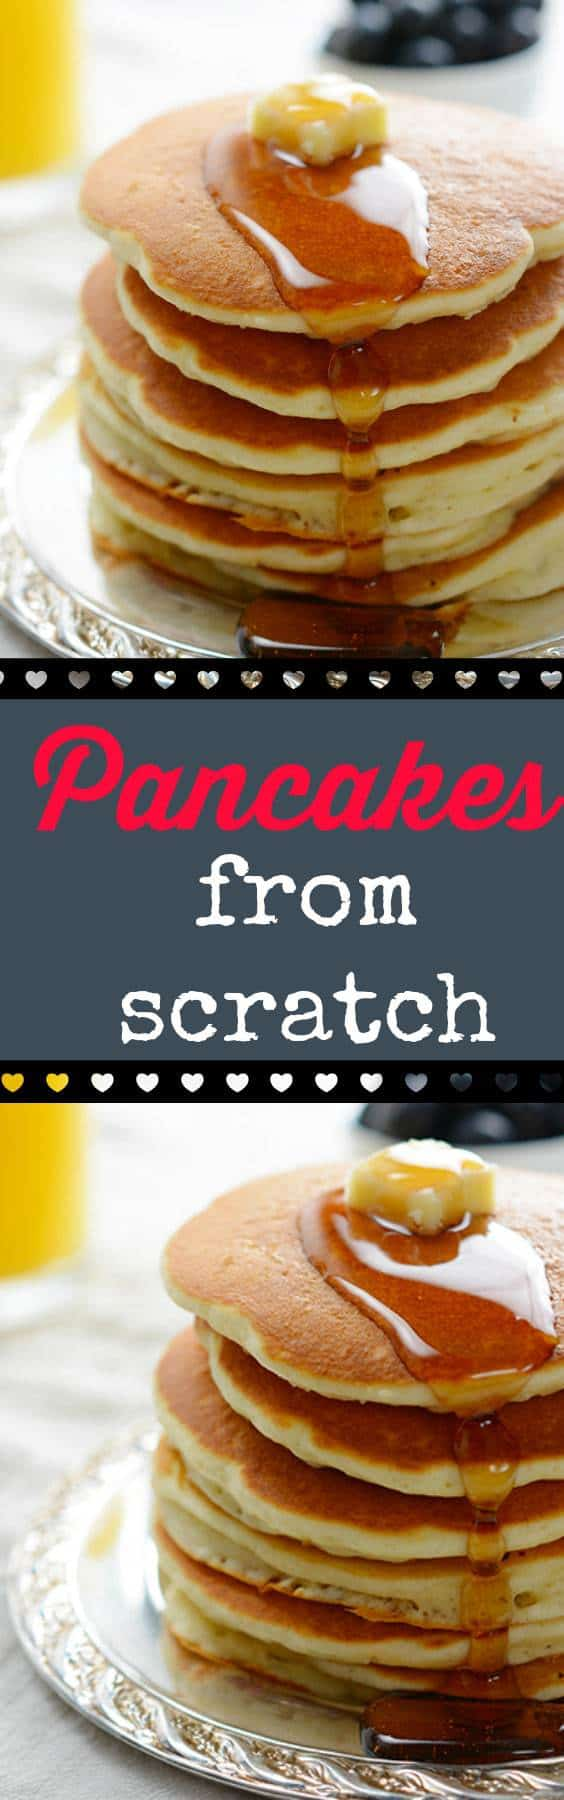 How to make simple but delicious pancakes from scratch, my family's favourite easy recipe! From @kitchenmagpie